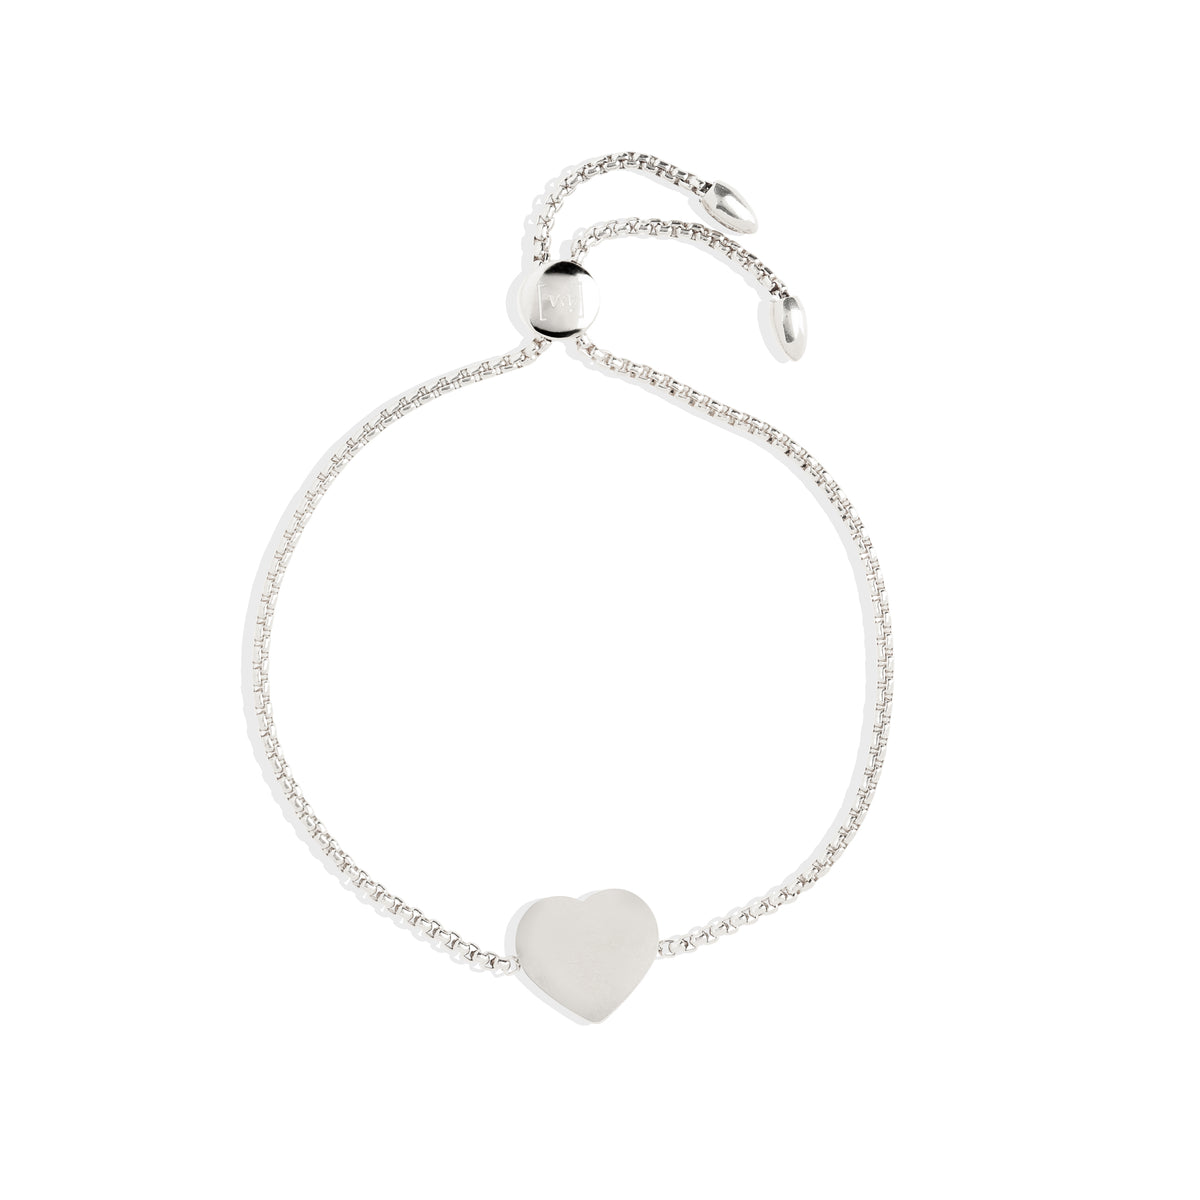 Heart Bracelet - Rhodium